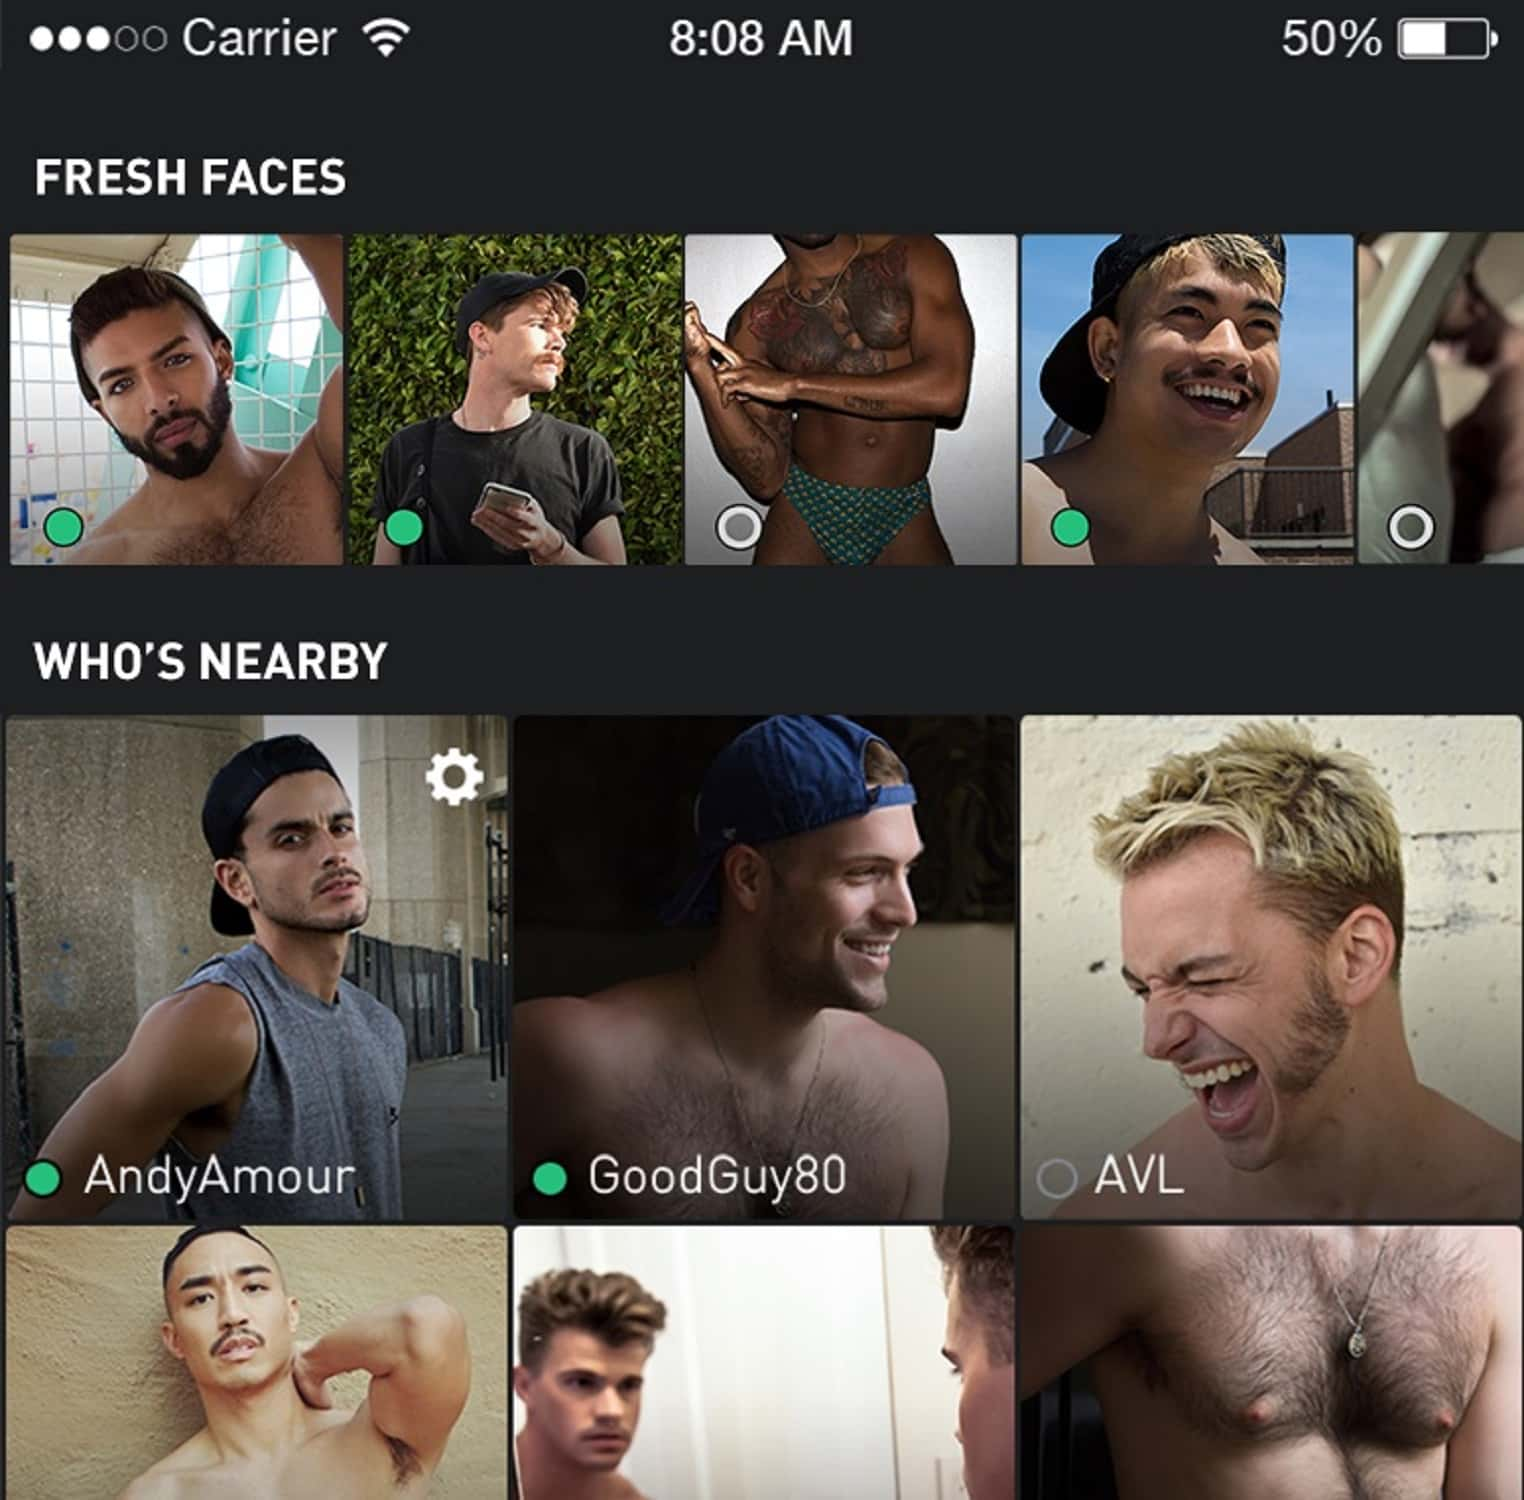 Other apps like grindr